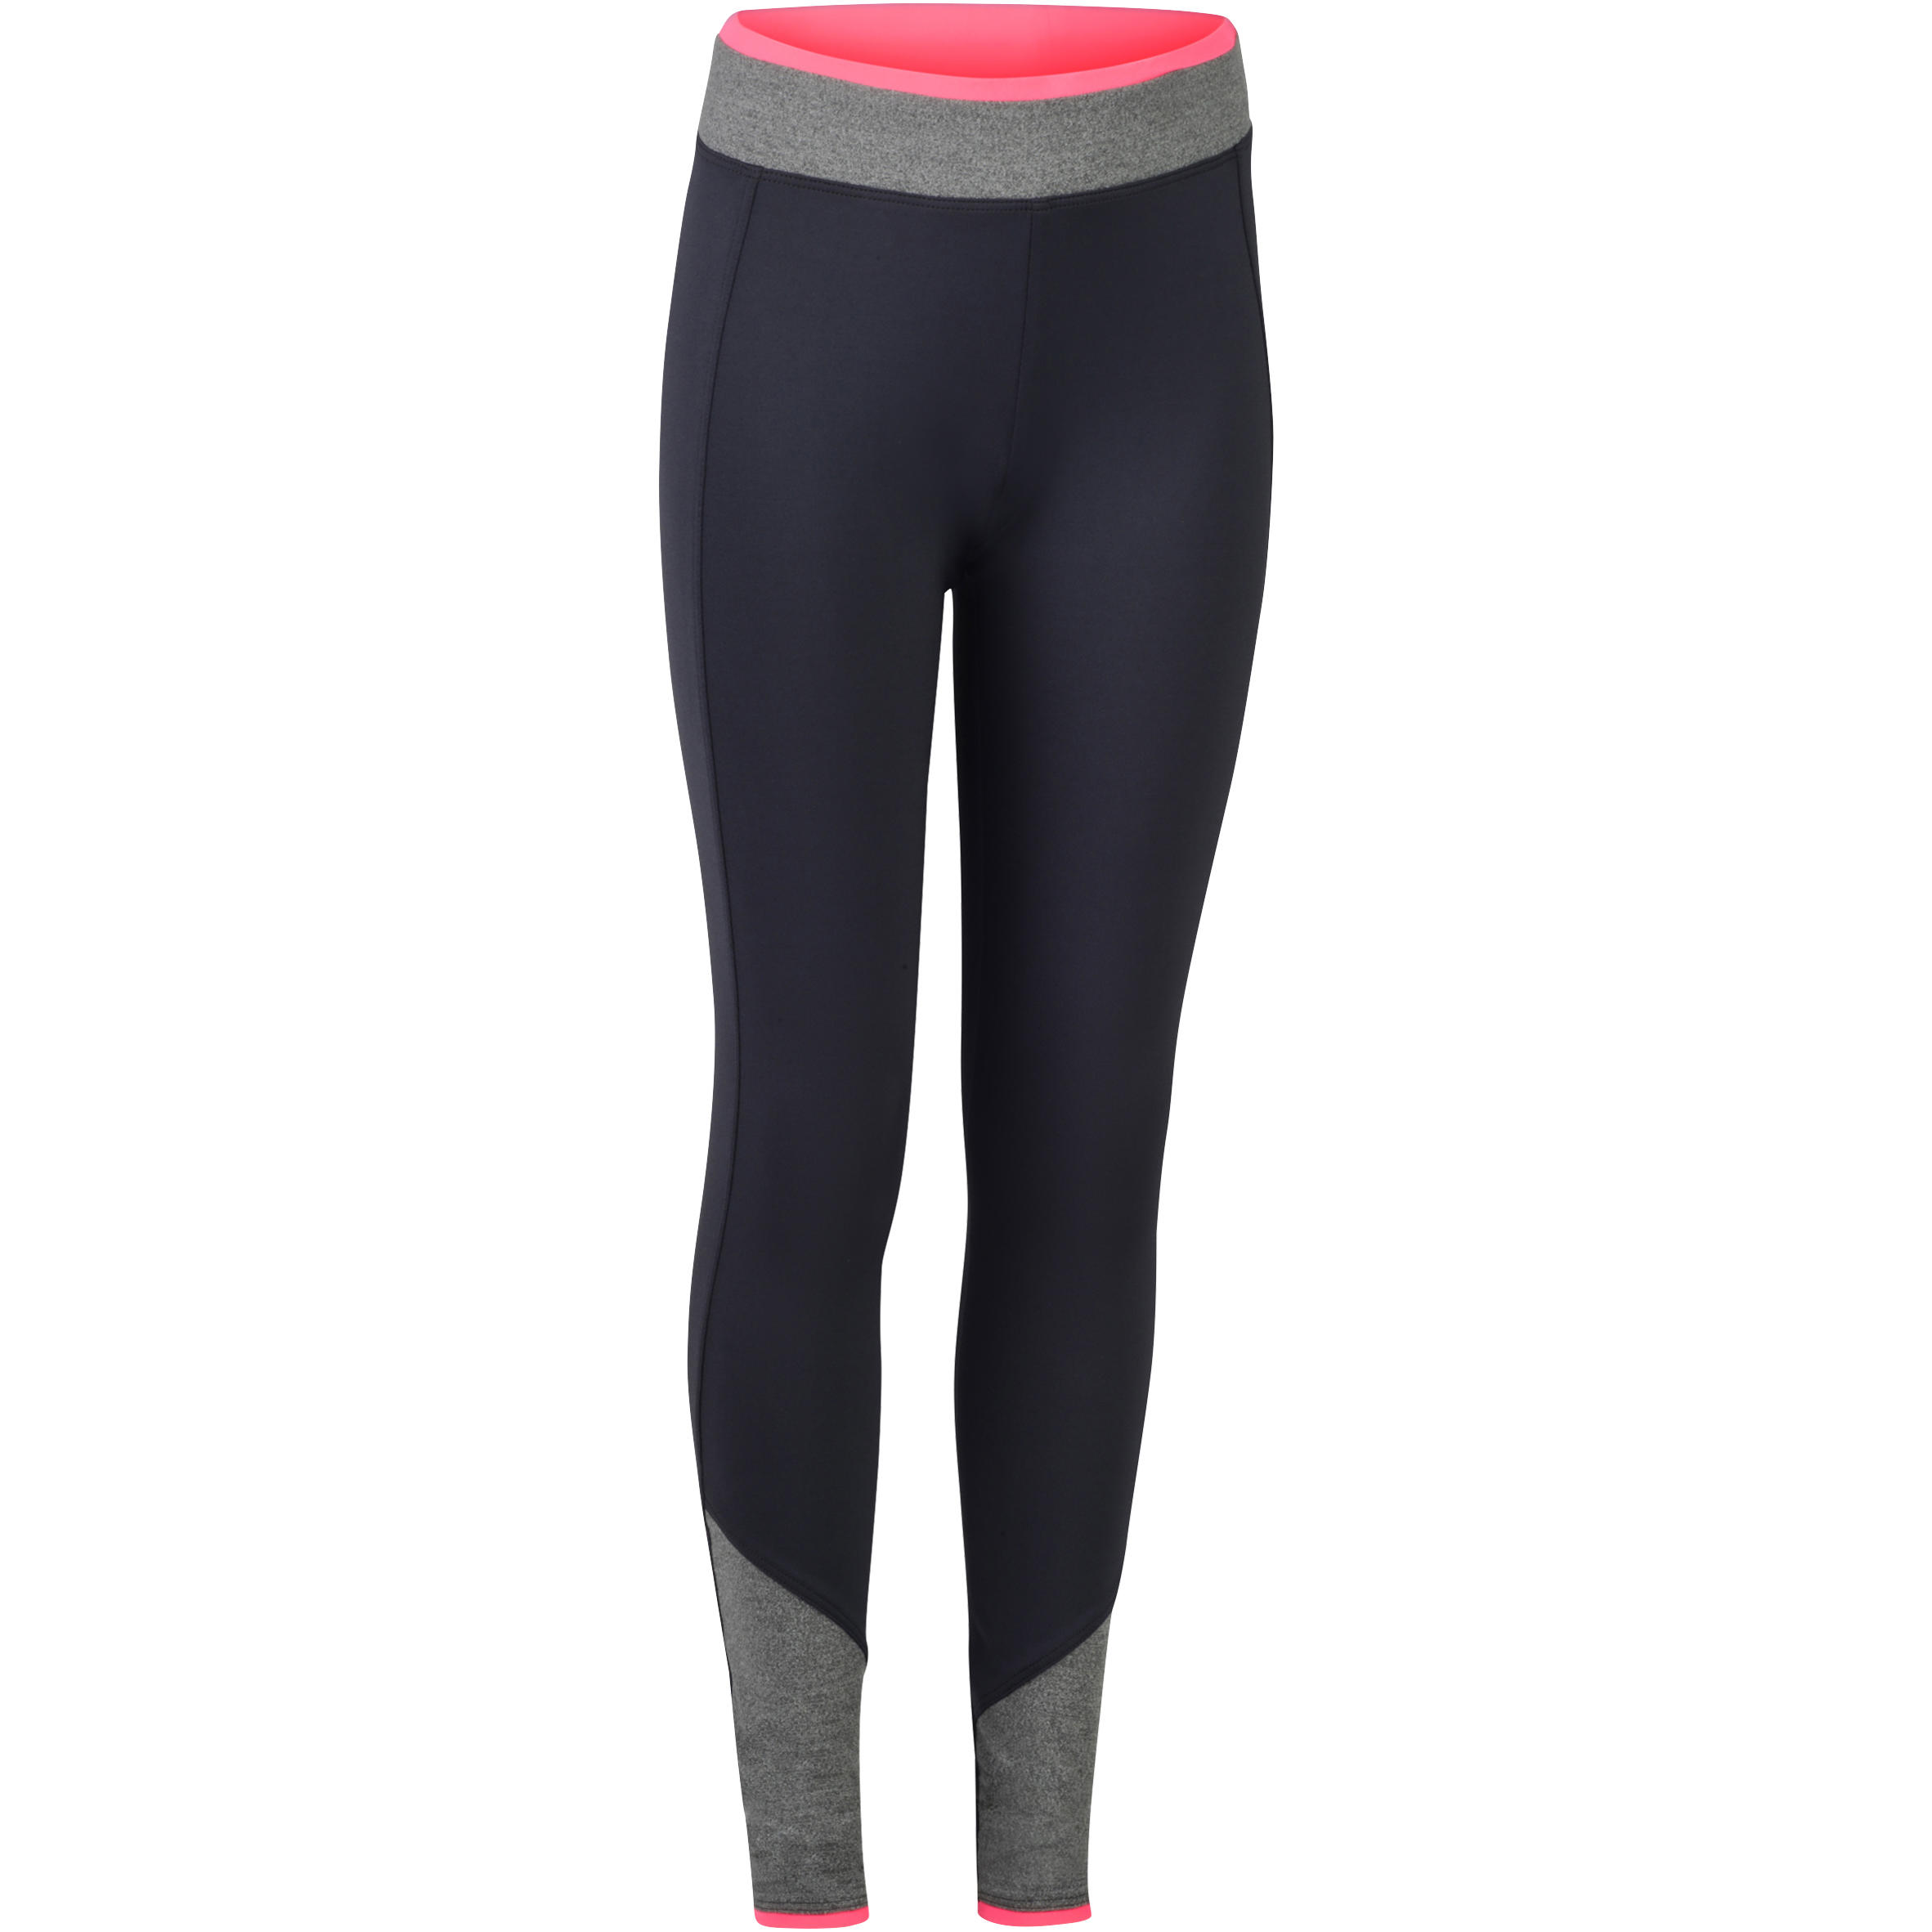 S500 Girls' Gym Leggings - Grey/Pink